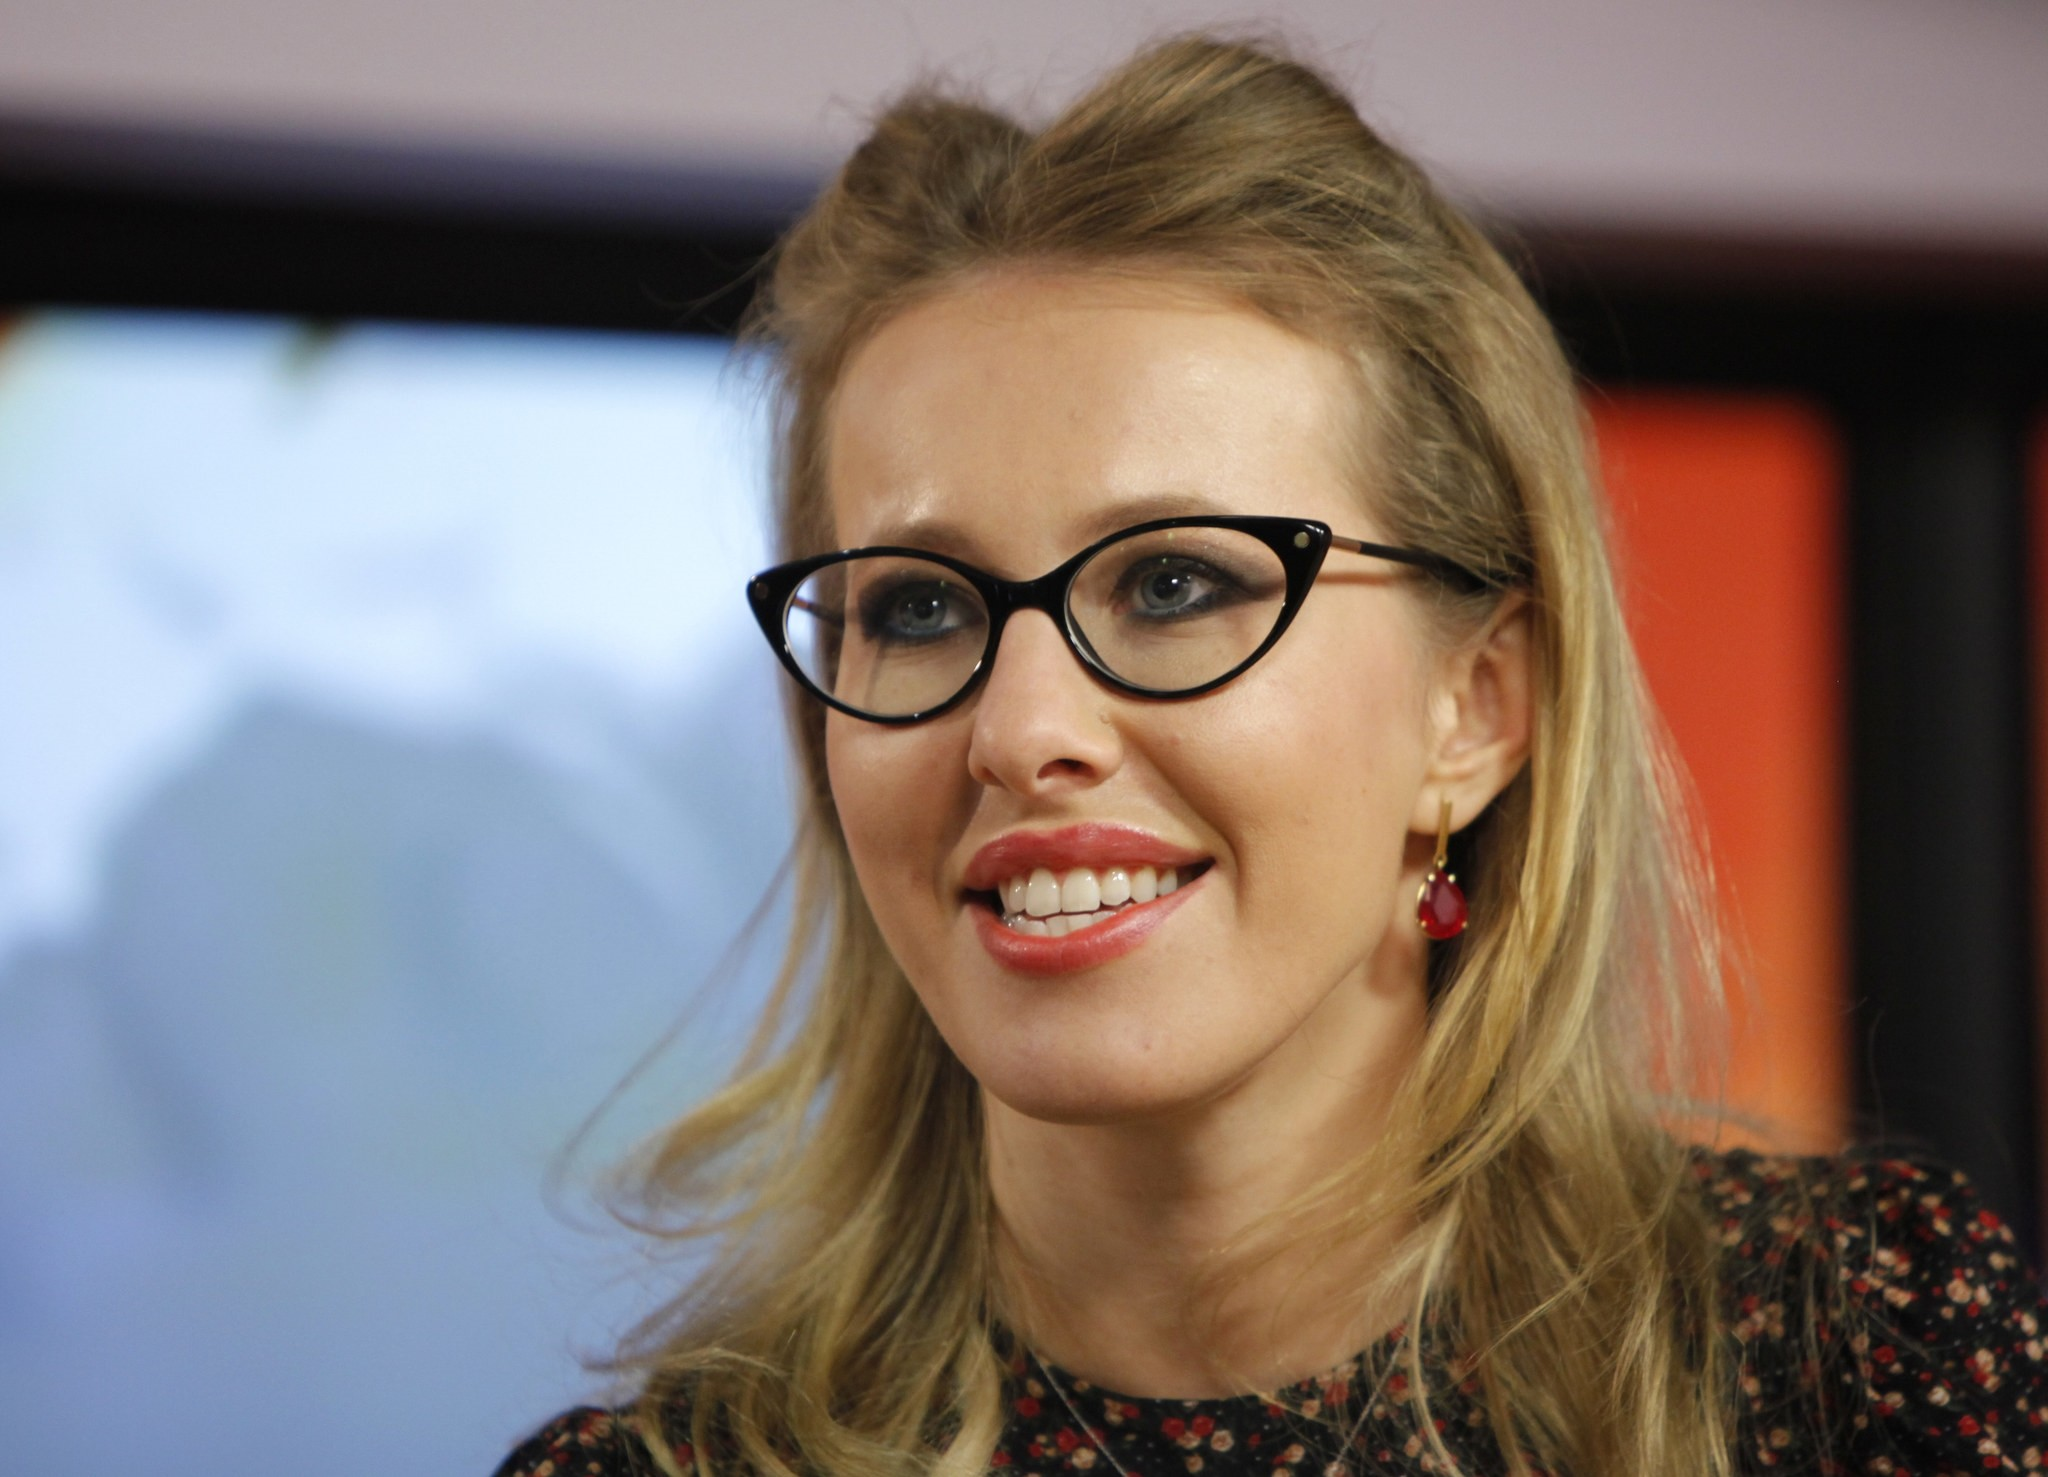 In this file photo taken on Wednesday, Jan. 18, 2012, Russian socialite and TV host Ksenia Sobchak speaks to journalists during her interview in the Echo Moskvy. (AP Photo)